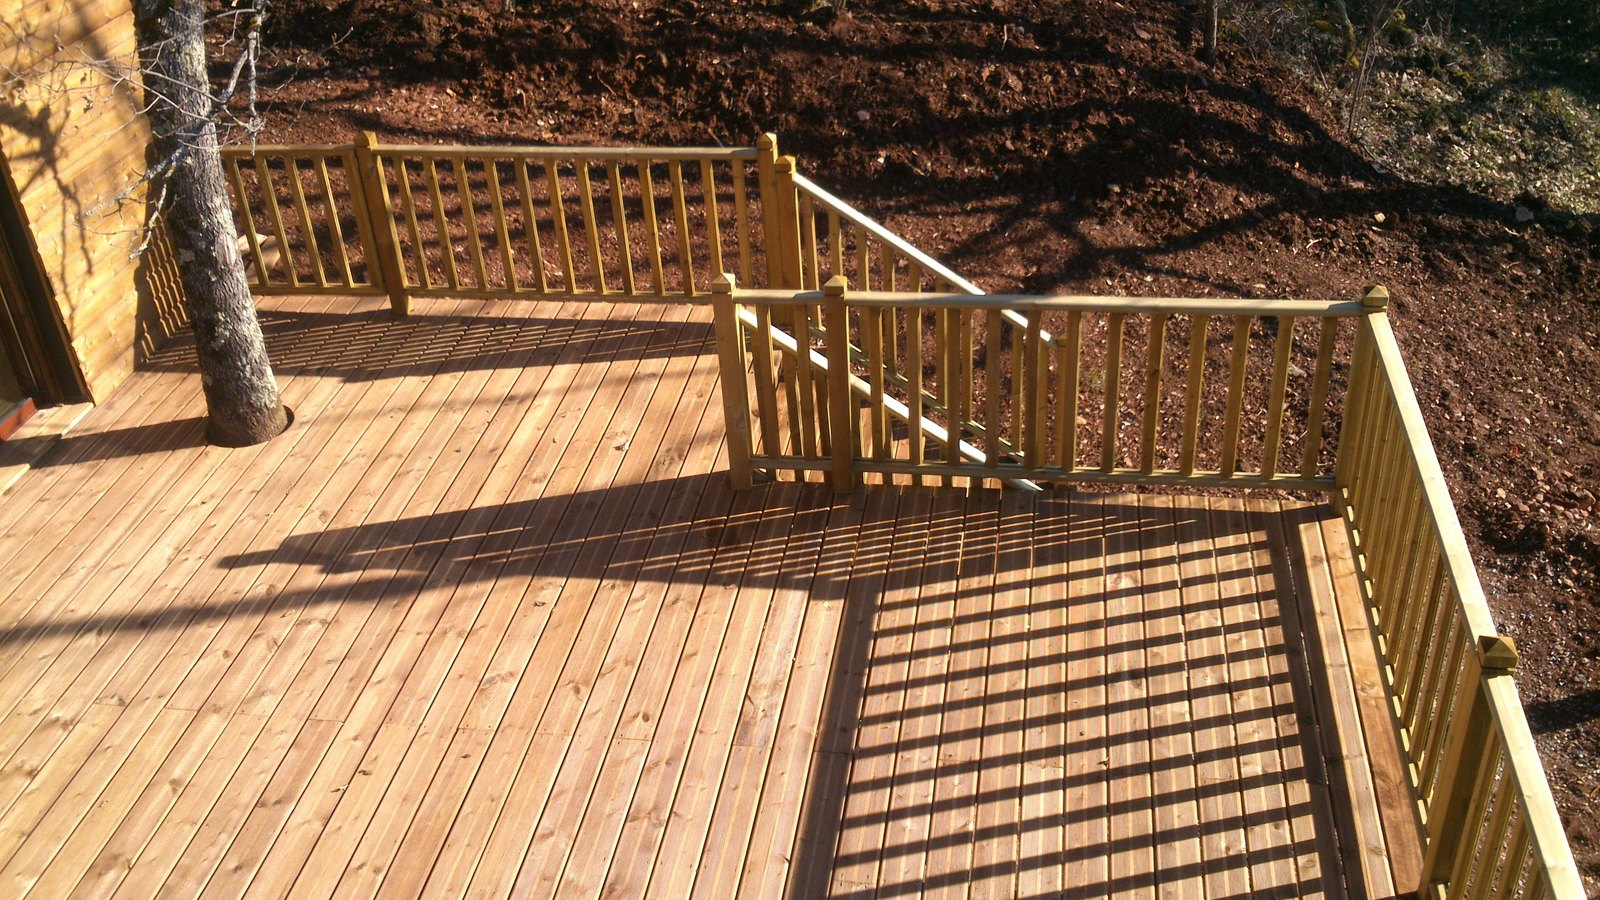 Garde corps bois terrasse design diverses id es de conception de patio en bois for Barriere de jardin bois